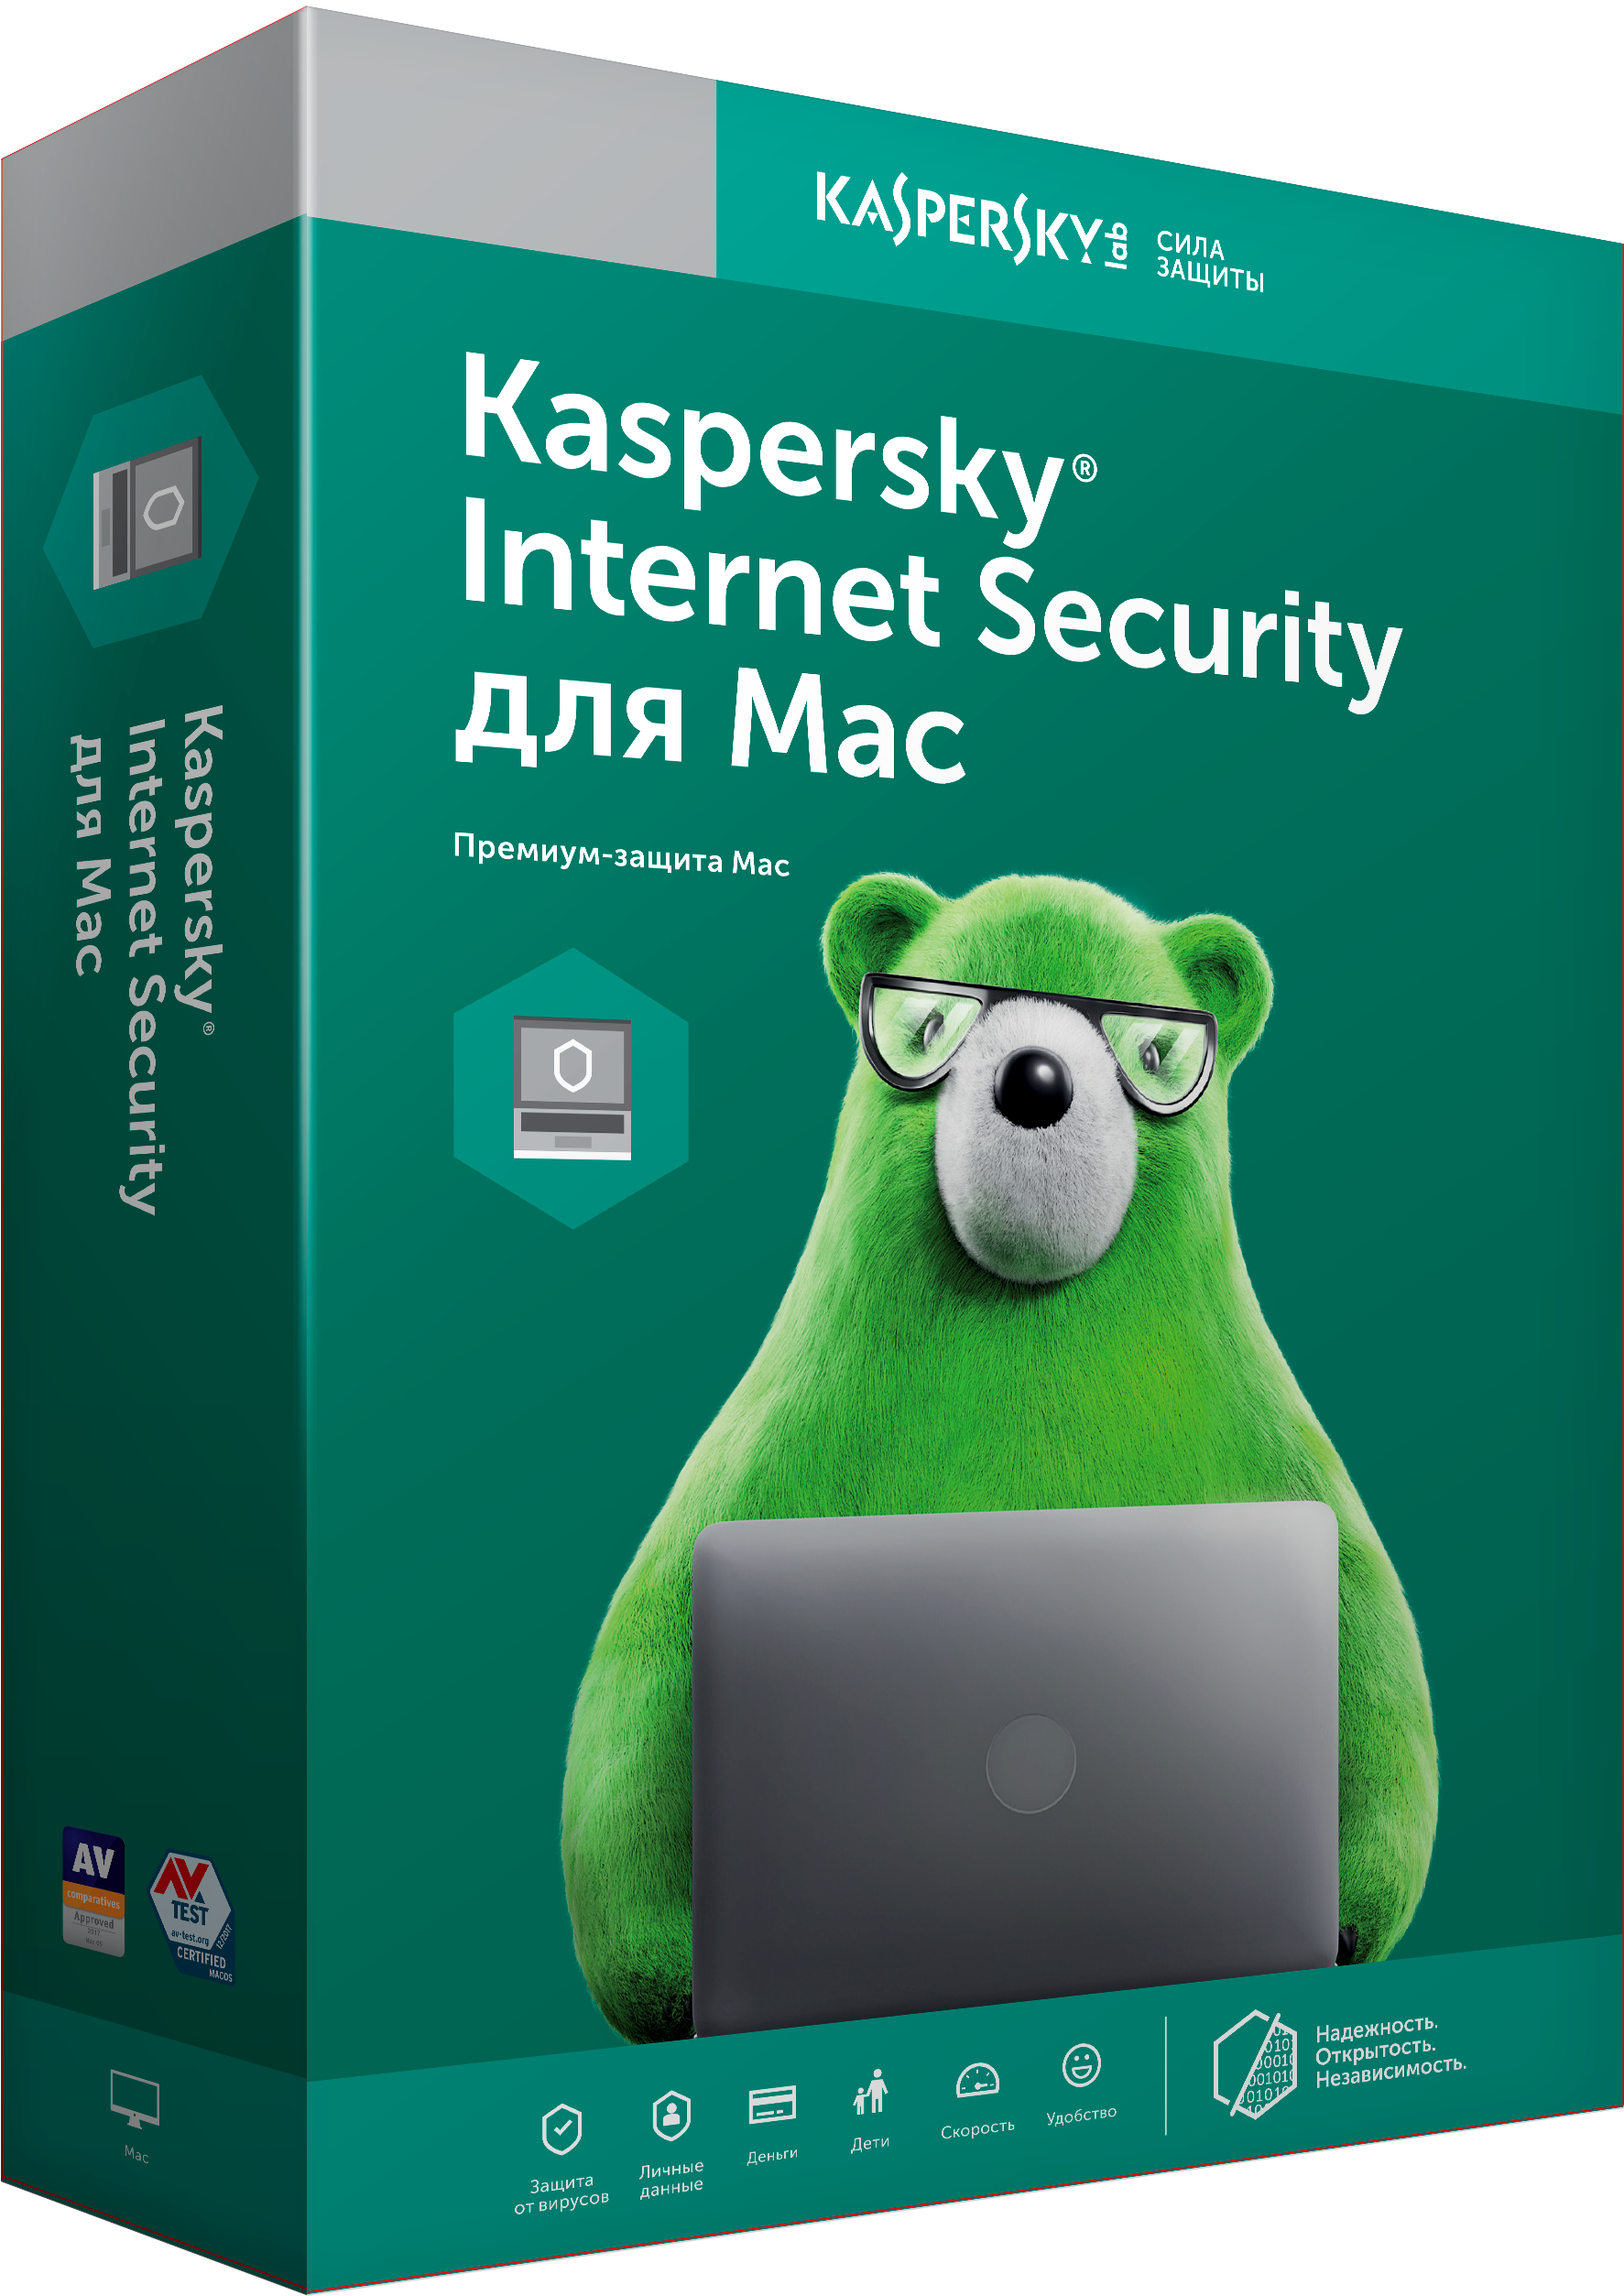 KASPERSKY INTERNET SECURITY for MAC 1 desktop 1 year